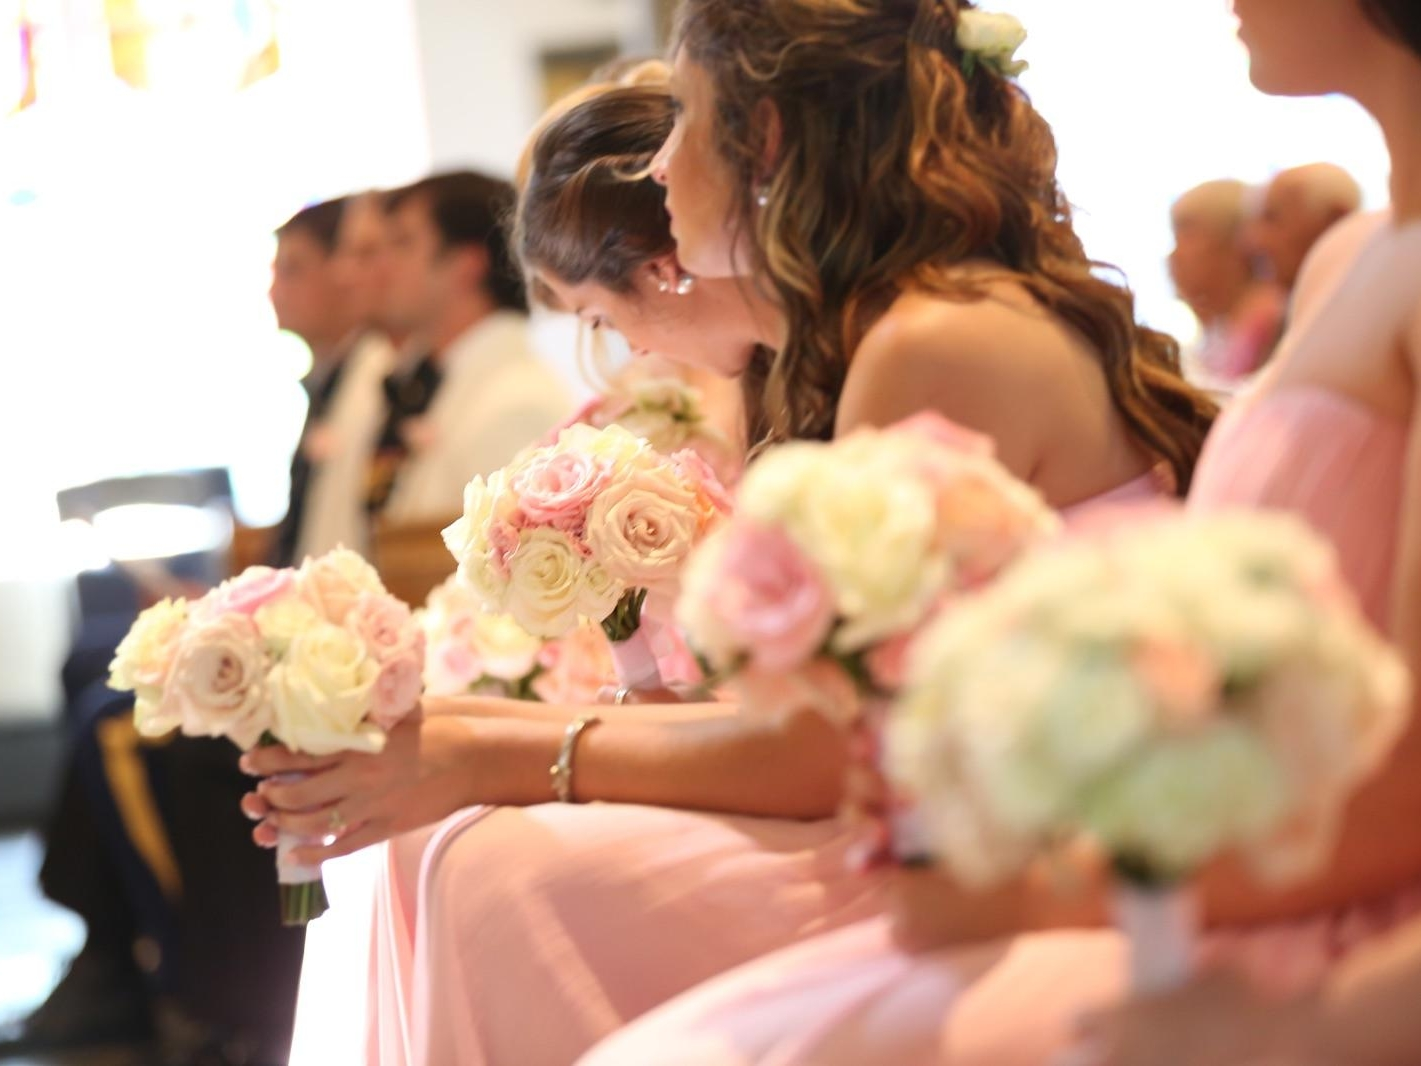 Aubrey's beautiful rose bouquet at Gracie and Mile's wedding.